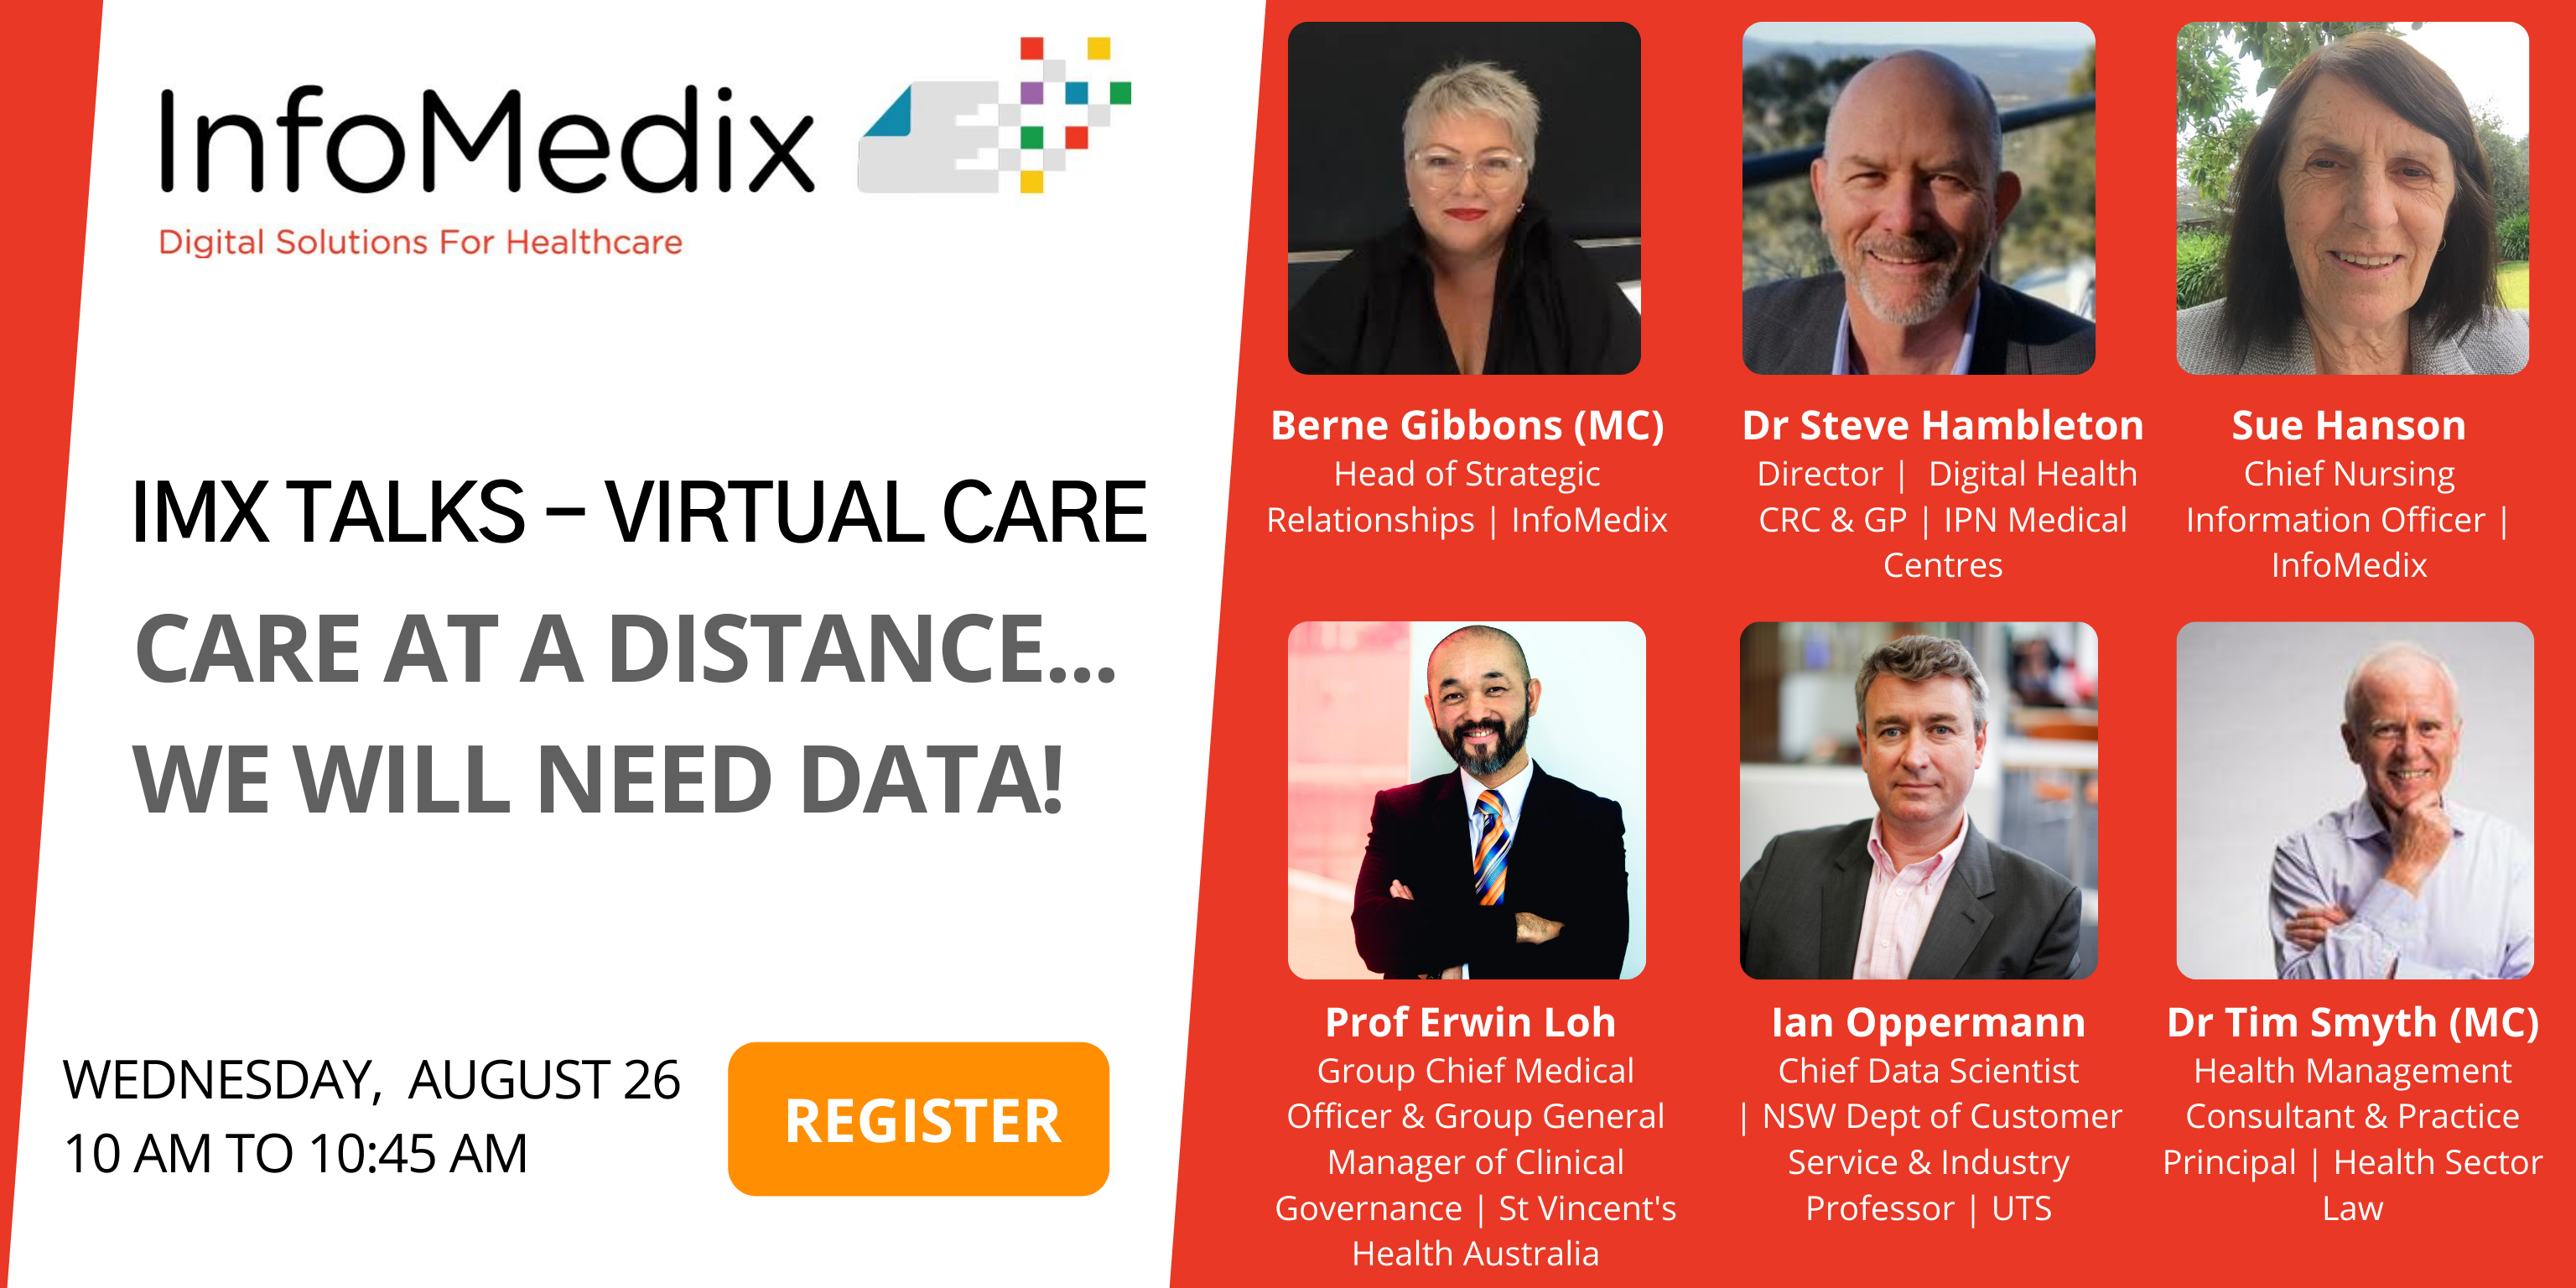 IMX Talks – Virtual Care. Join the online discussion